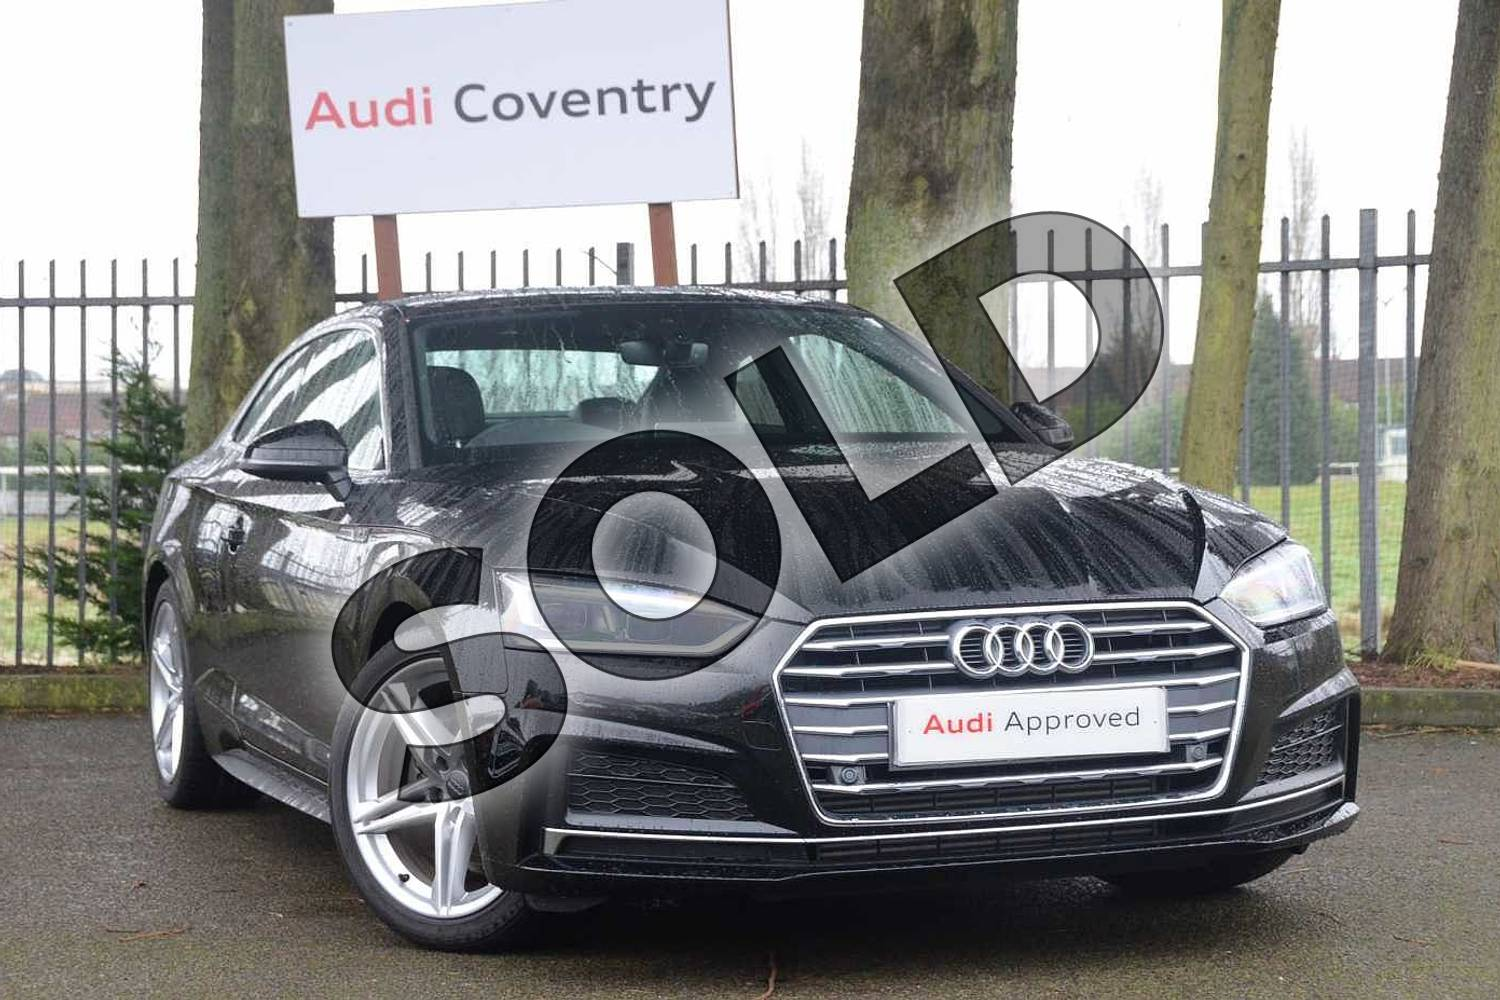 2018 Audi A5 Coupe 2.0 TFSI S Line 2dr S Tronic in Myth Black Metallic at Stratford Audi